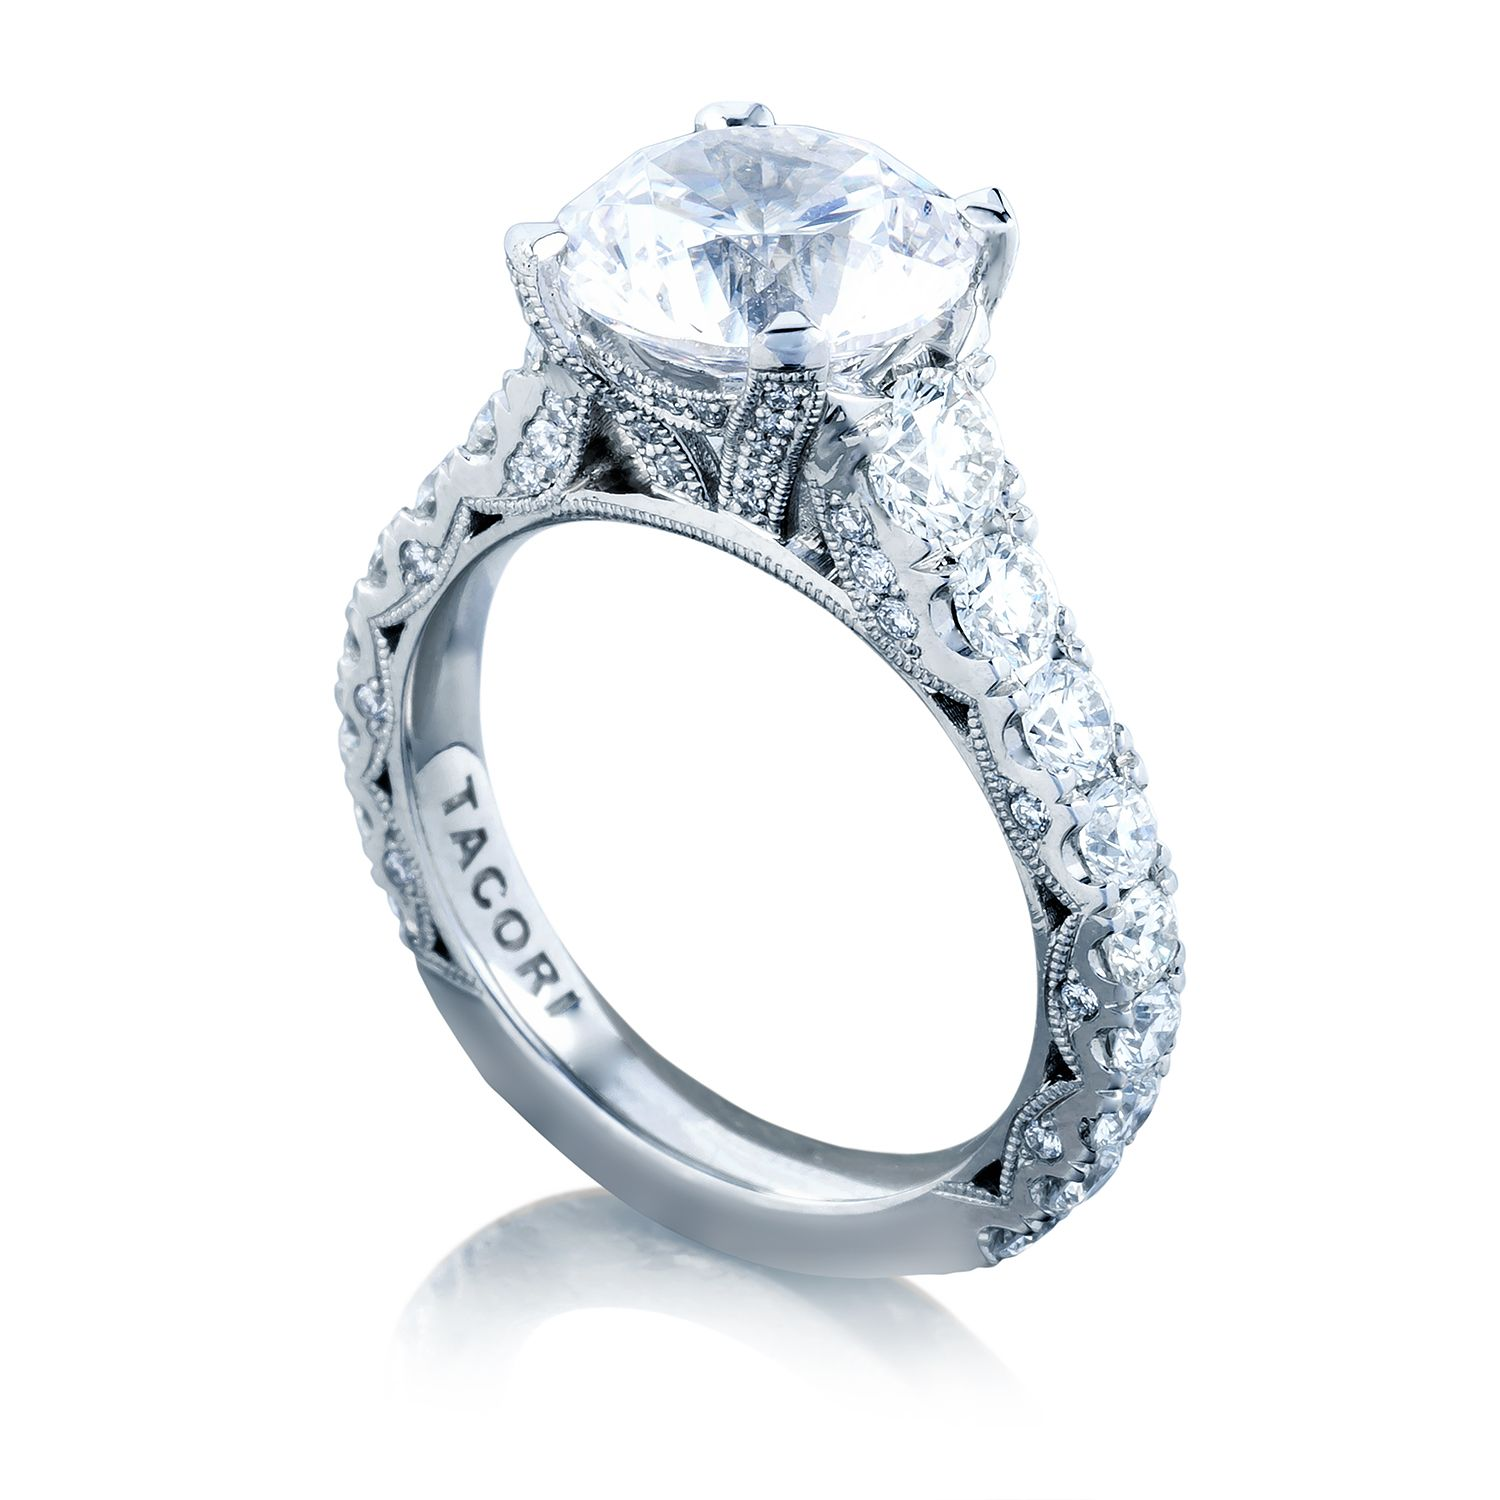 Solitaire tacori engagement rings for women